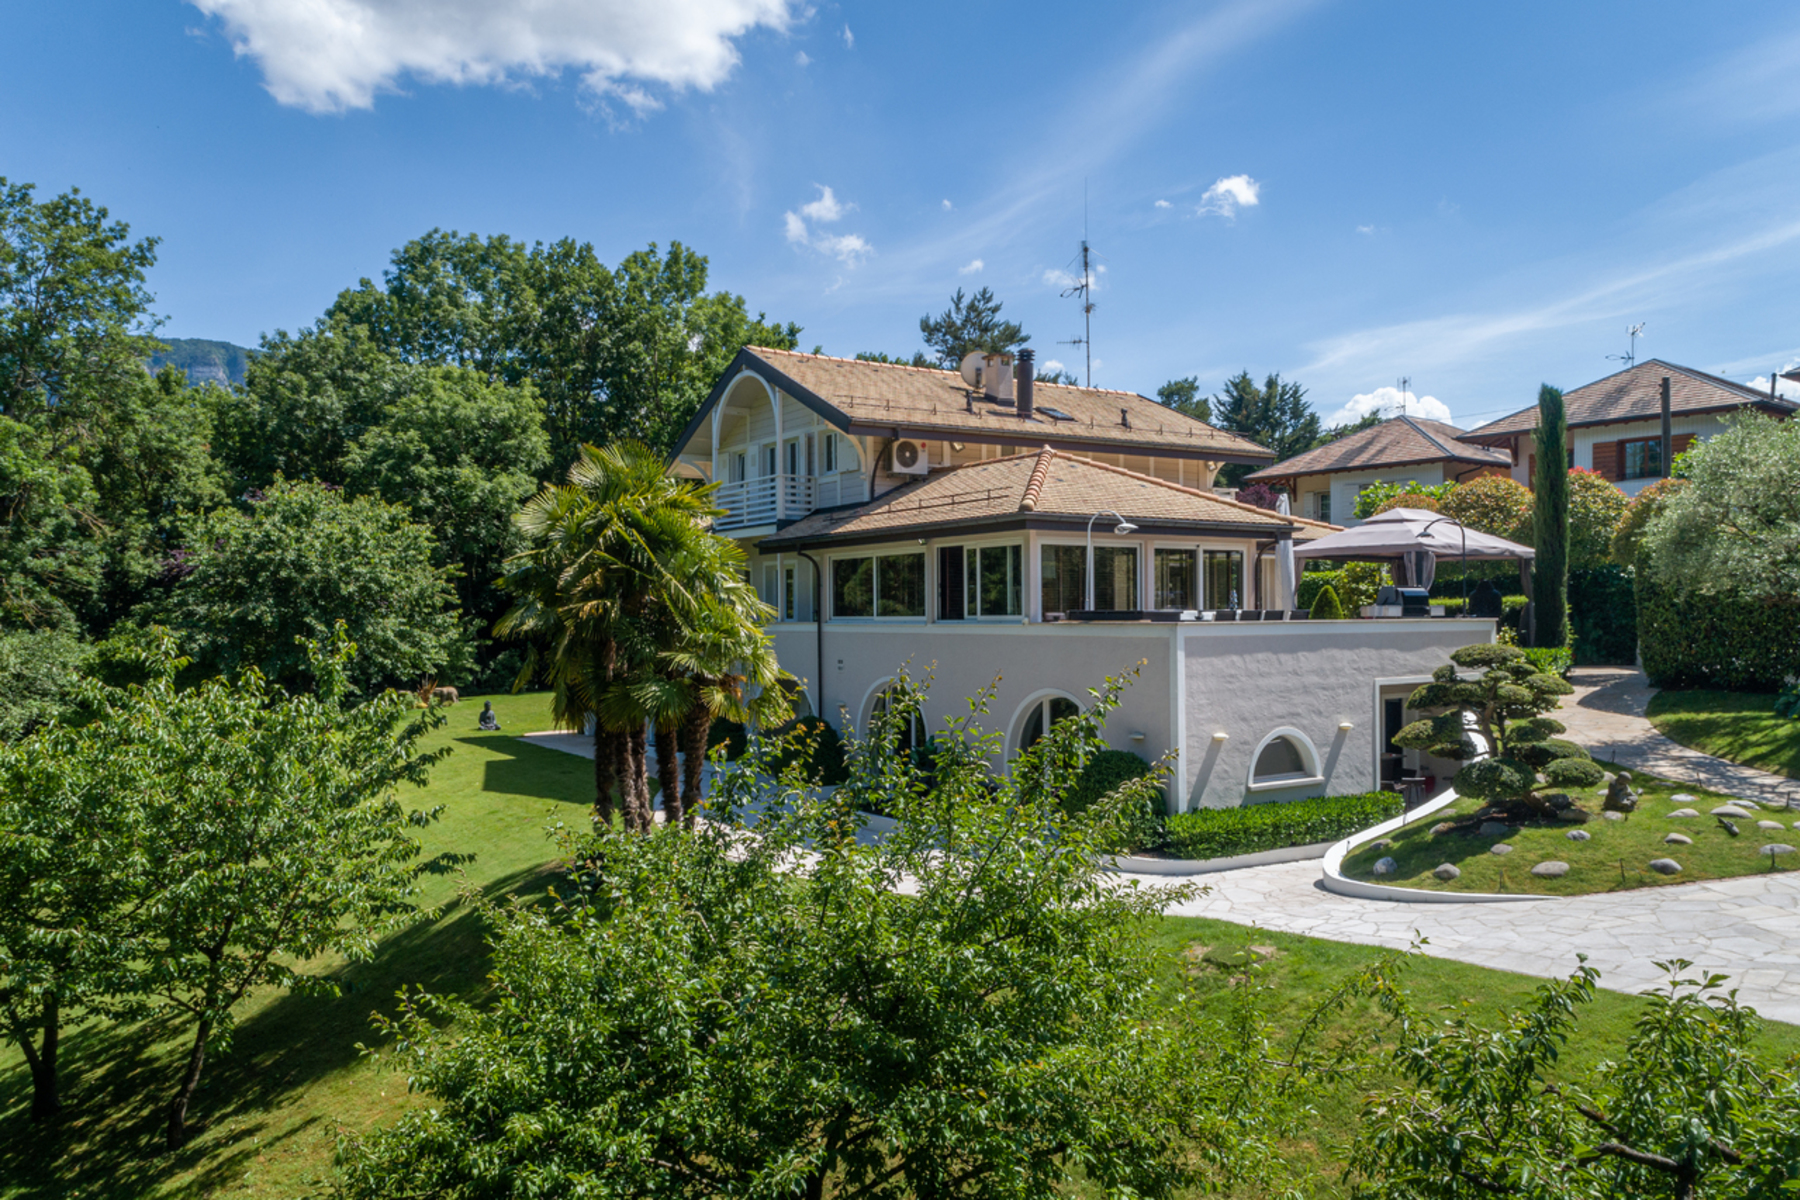 Property for Sale at Spacious villa in a green setting Lancy Other Geneve, Geneva 1212 Switzerland